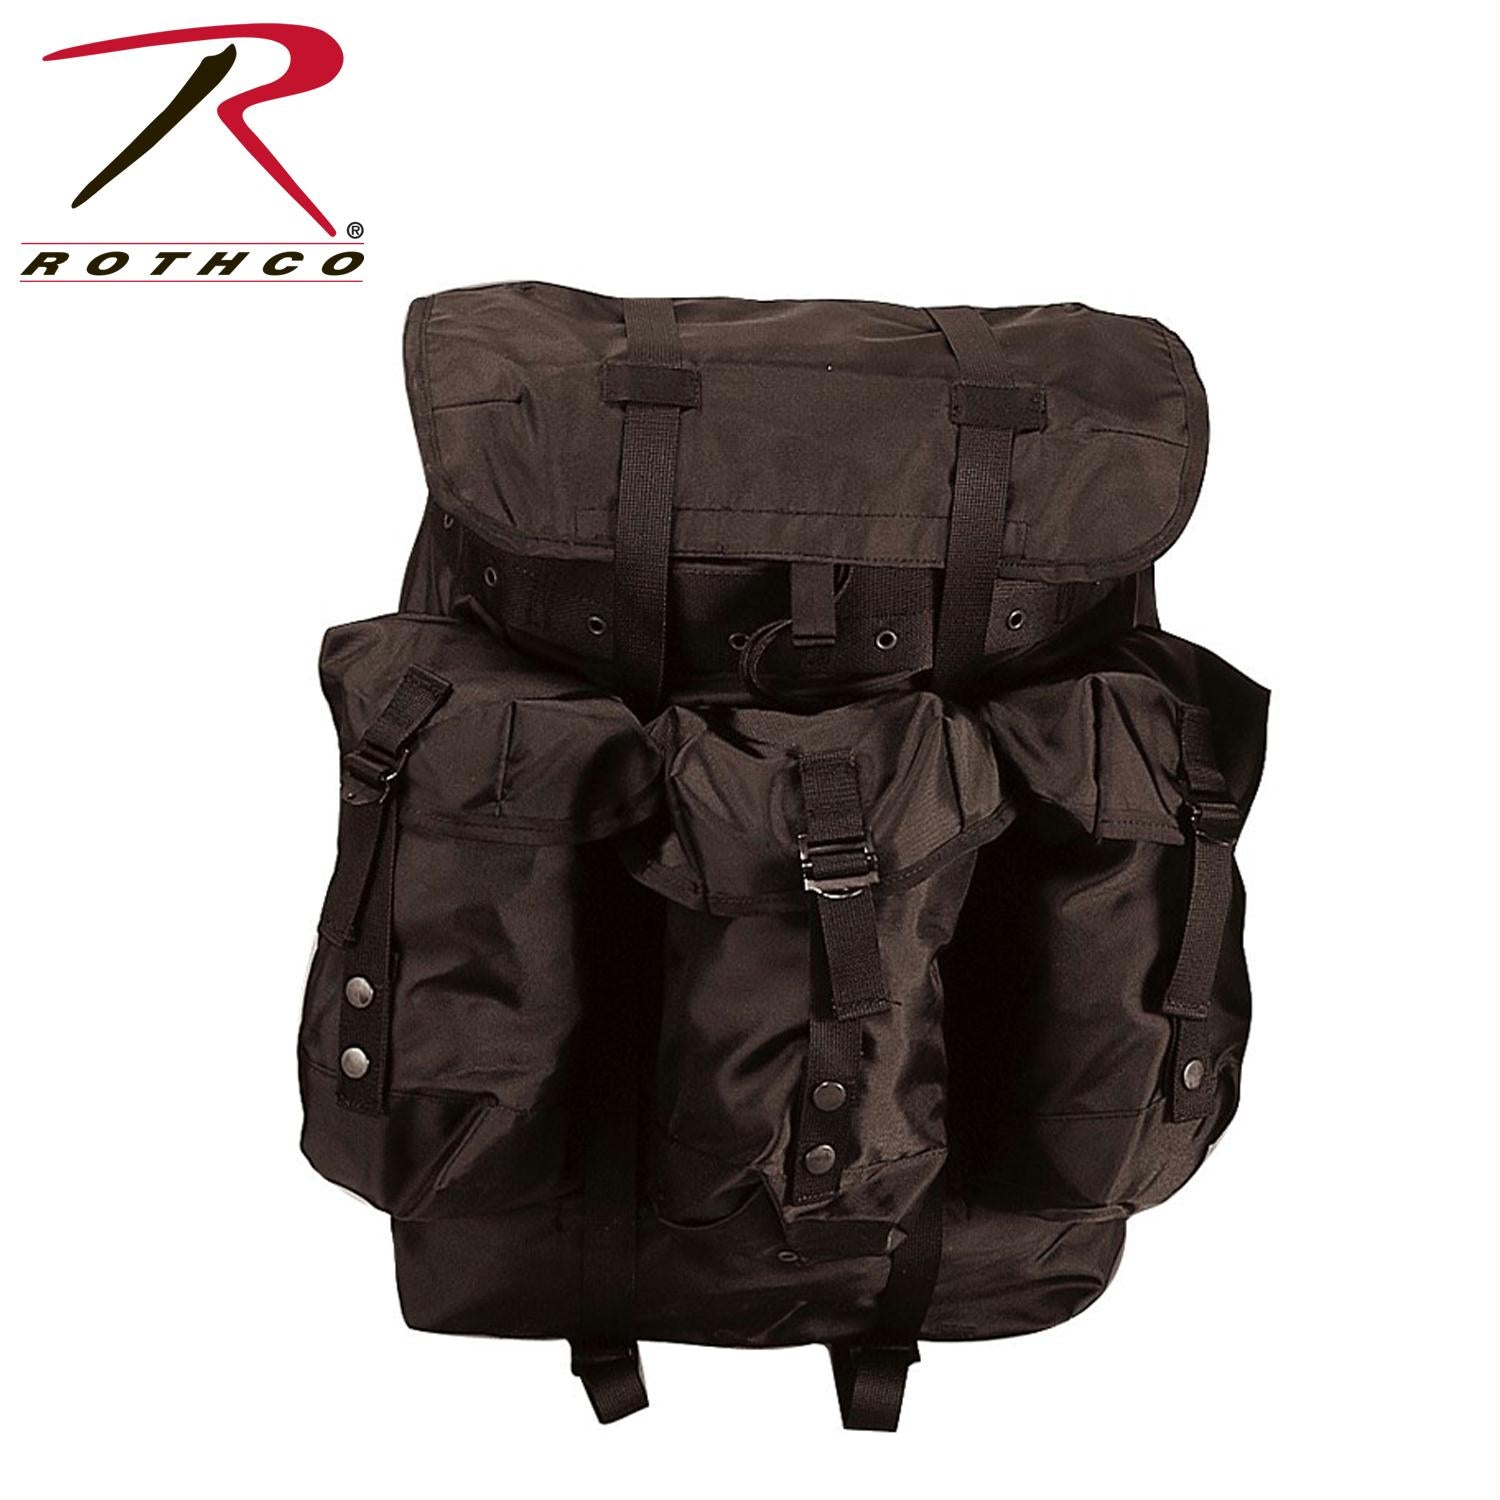 Rothco G.I. Type Large Alice Pack - Black